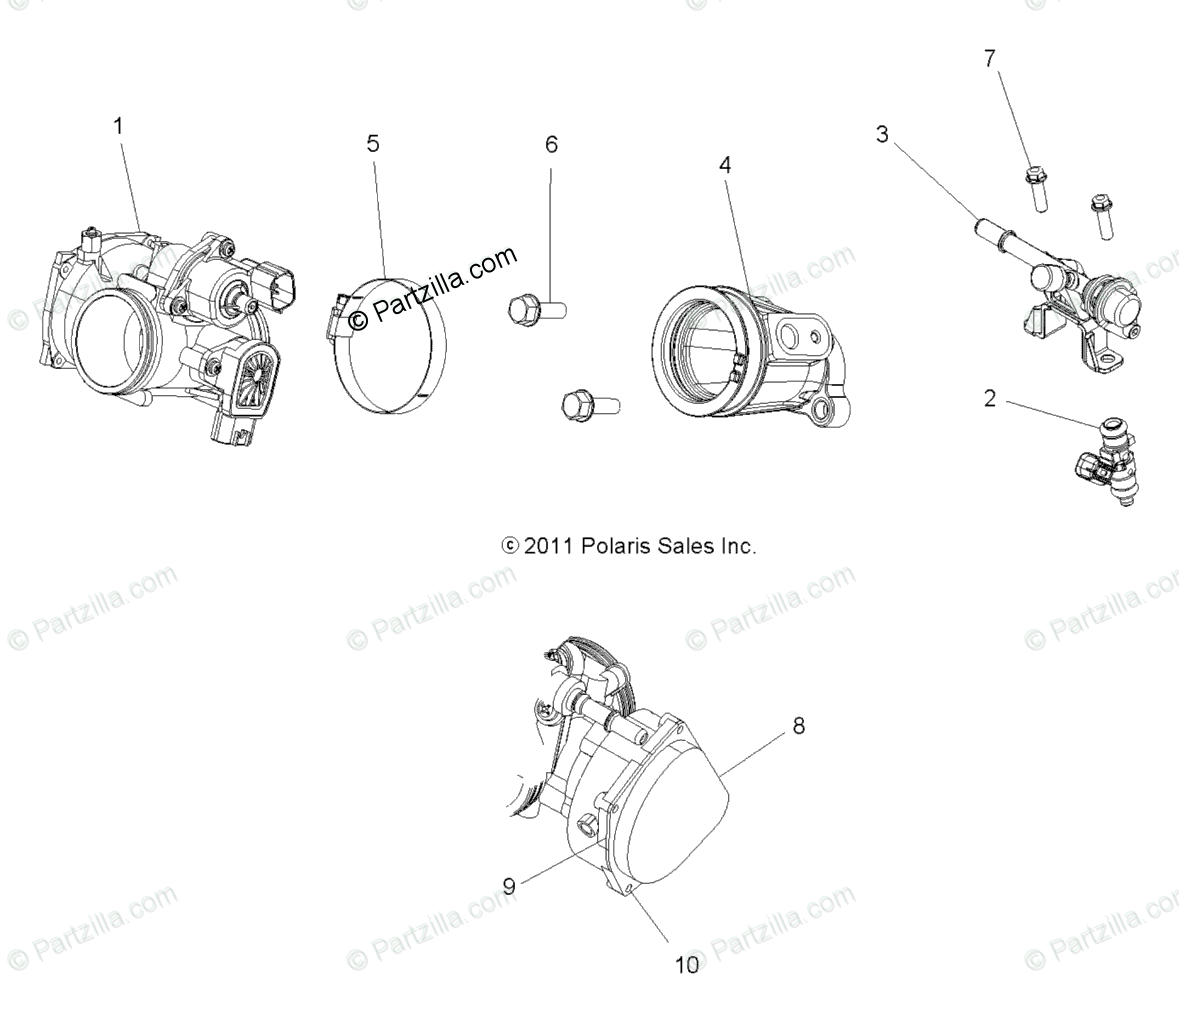 570 Efi Polaris Ranger Engine Diagram Engine Wiring